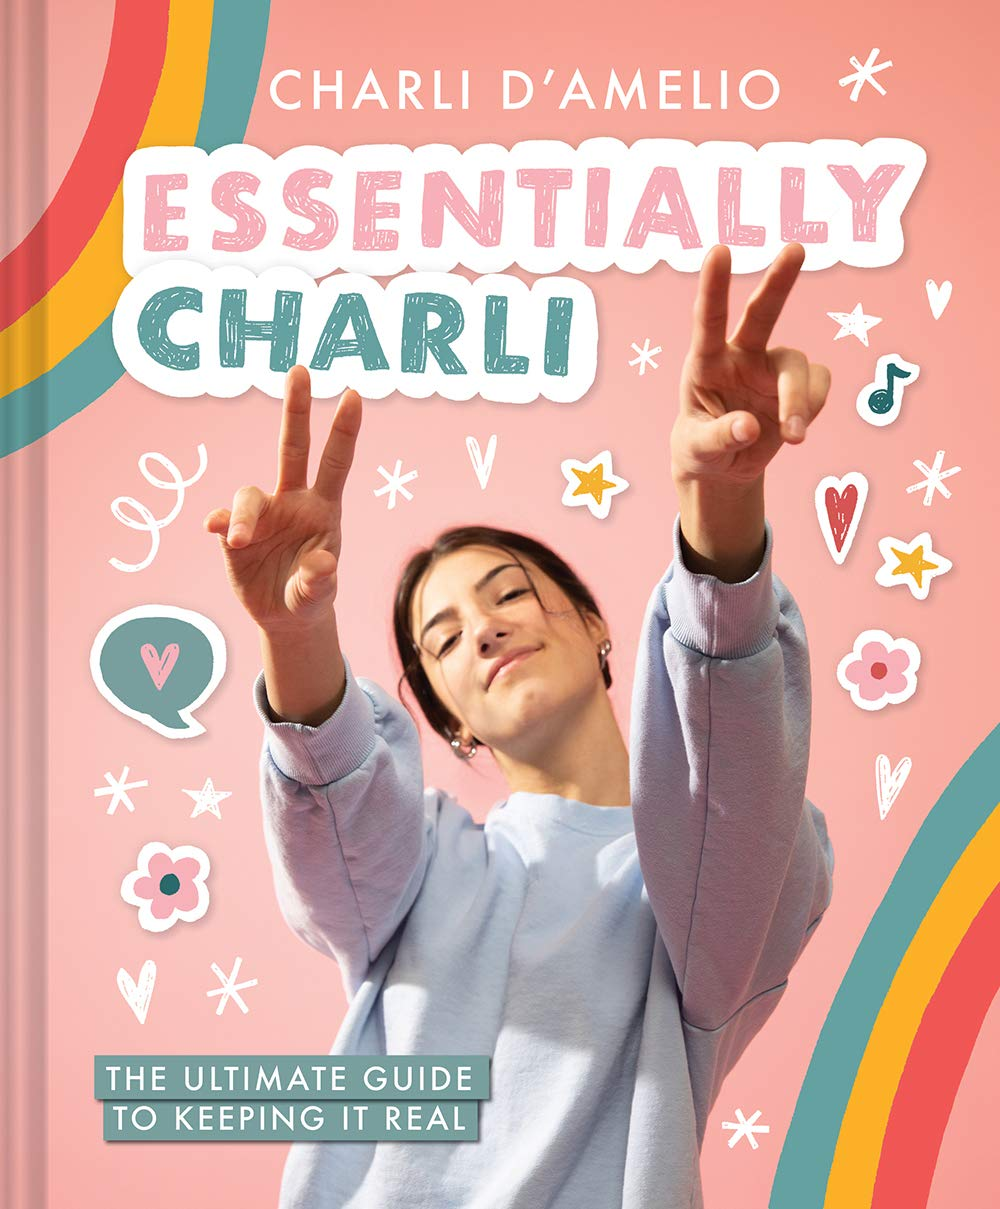 Essentially Charli: The Ultimate Guide to Keeping It Real: D'Amelio, Charli:  9781419752322: Books - Amazon.ca